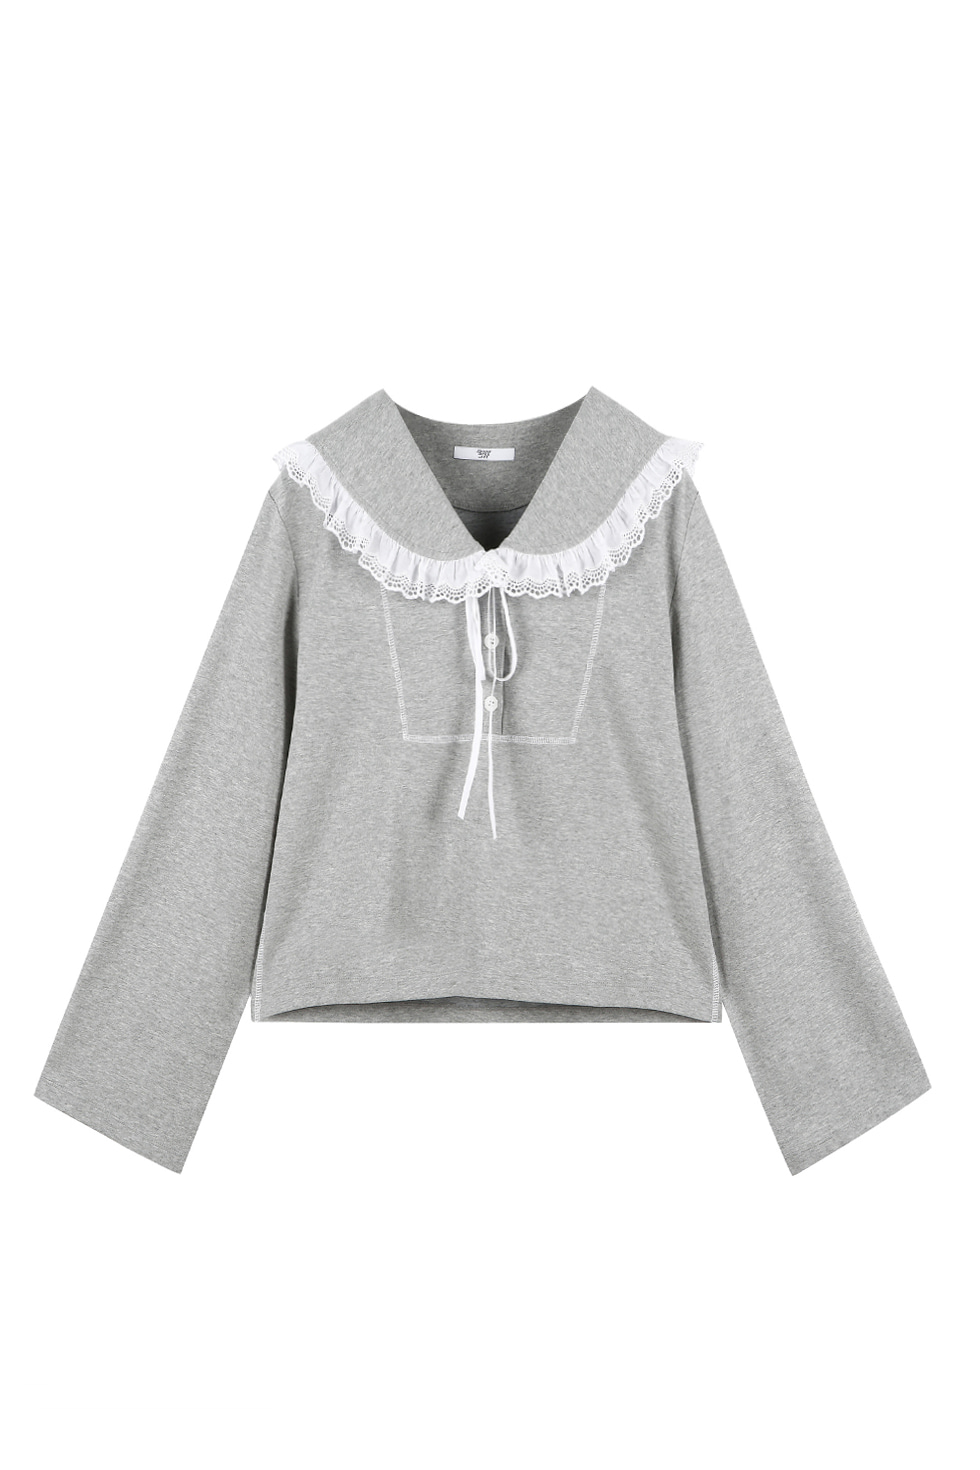 COTTON RUFFLE JERSEY TOP - GREY